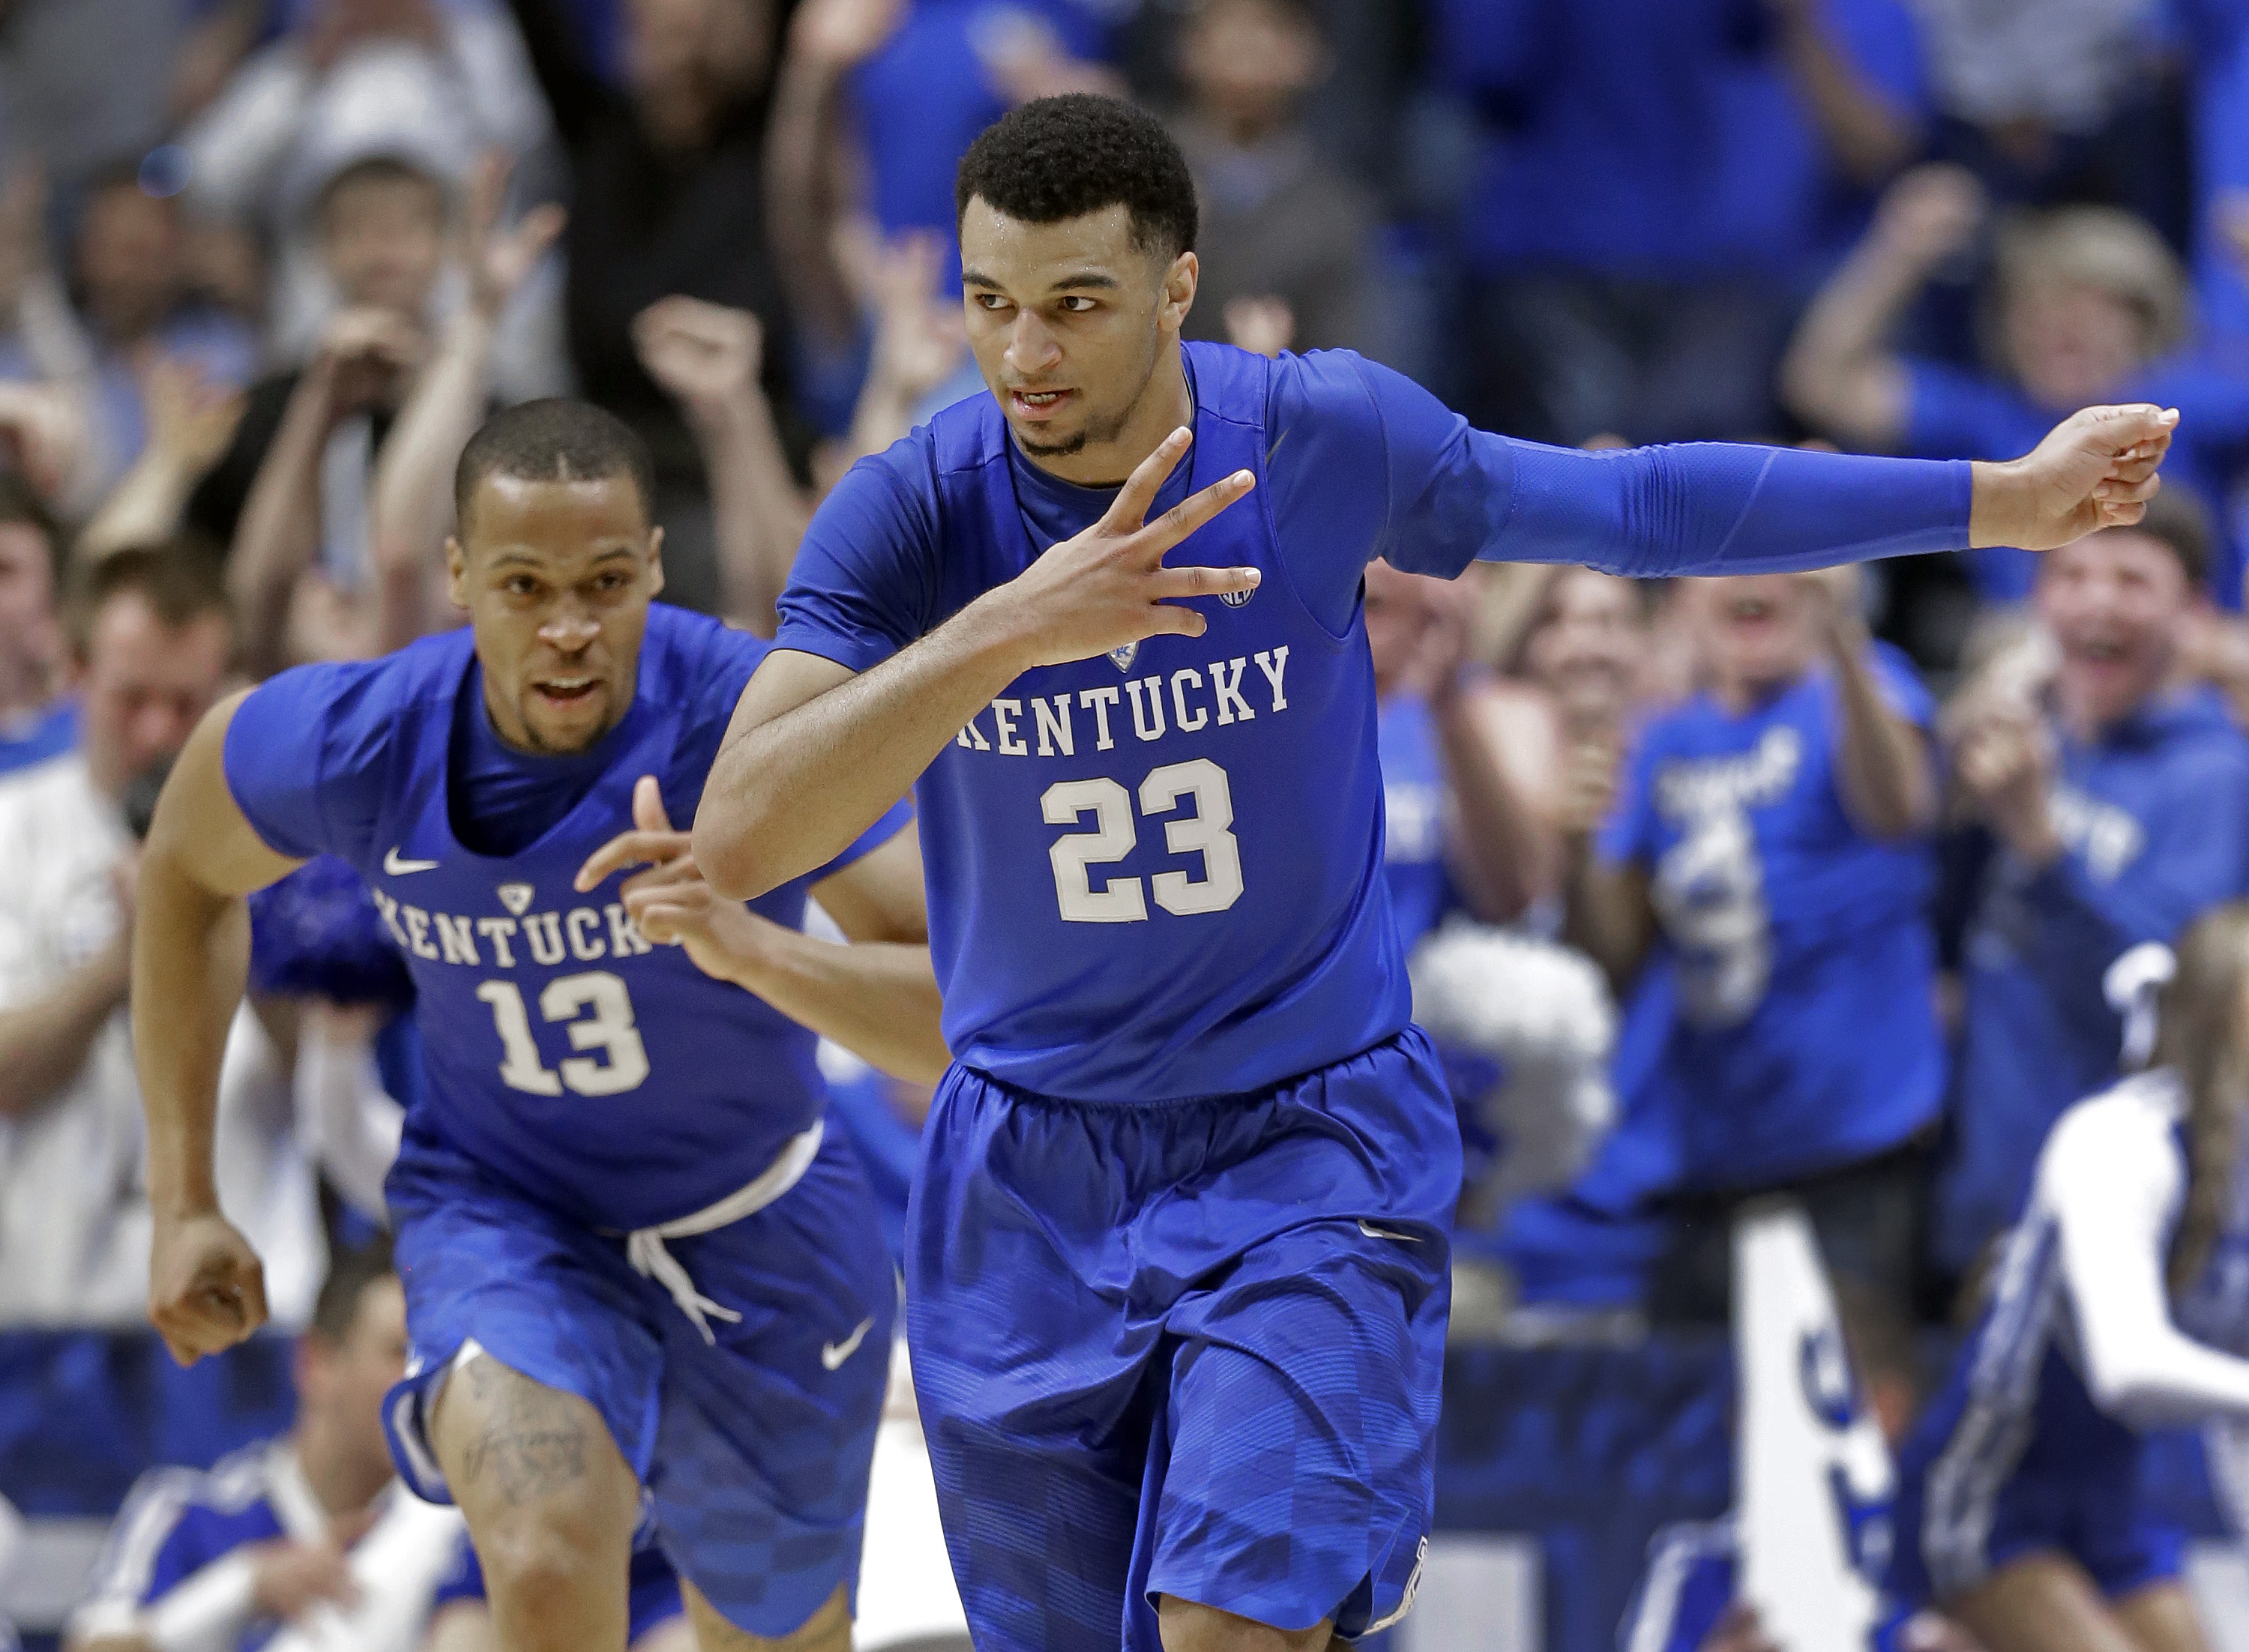 Kentucky's Jamal Murray (23) and Isaiah Briscoe (13) celebrate Murray's three point basket against Texas A&M during the second half of an NCAA college basketball game in the championship of the Southeastern Conference tournament in Nashville, Tenn., Sunda